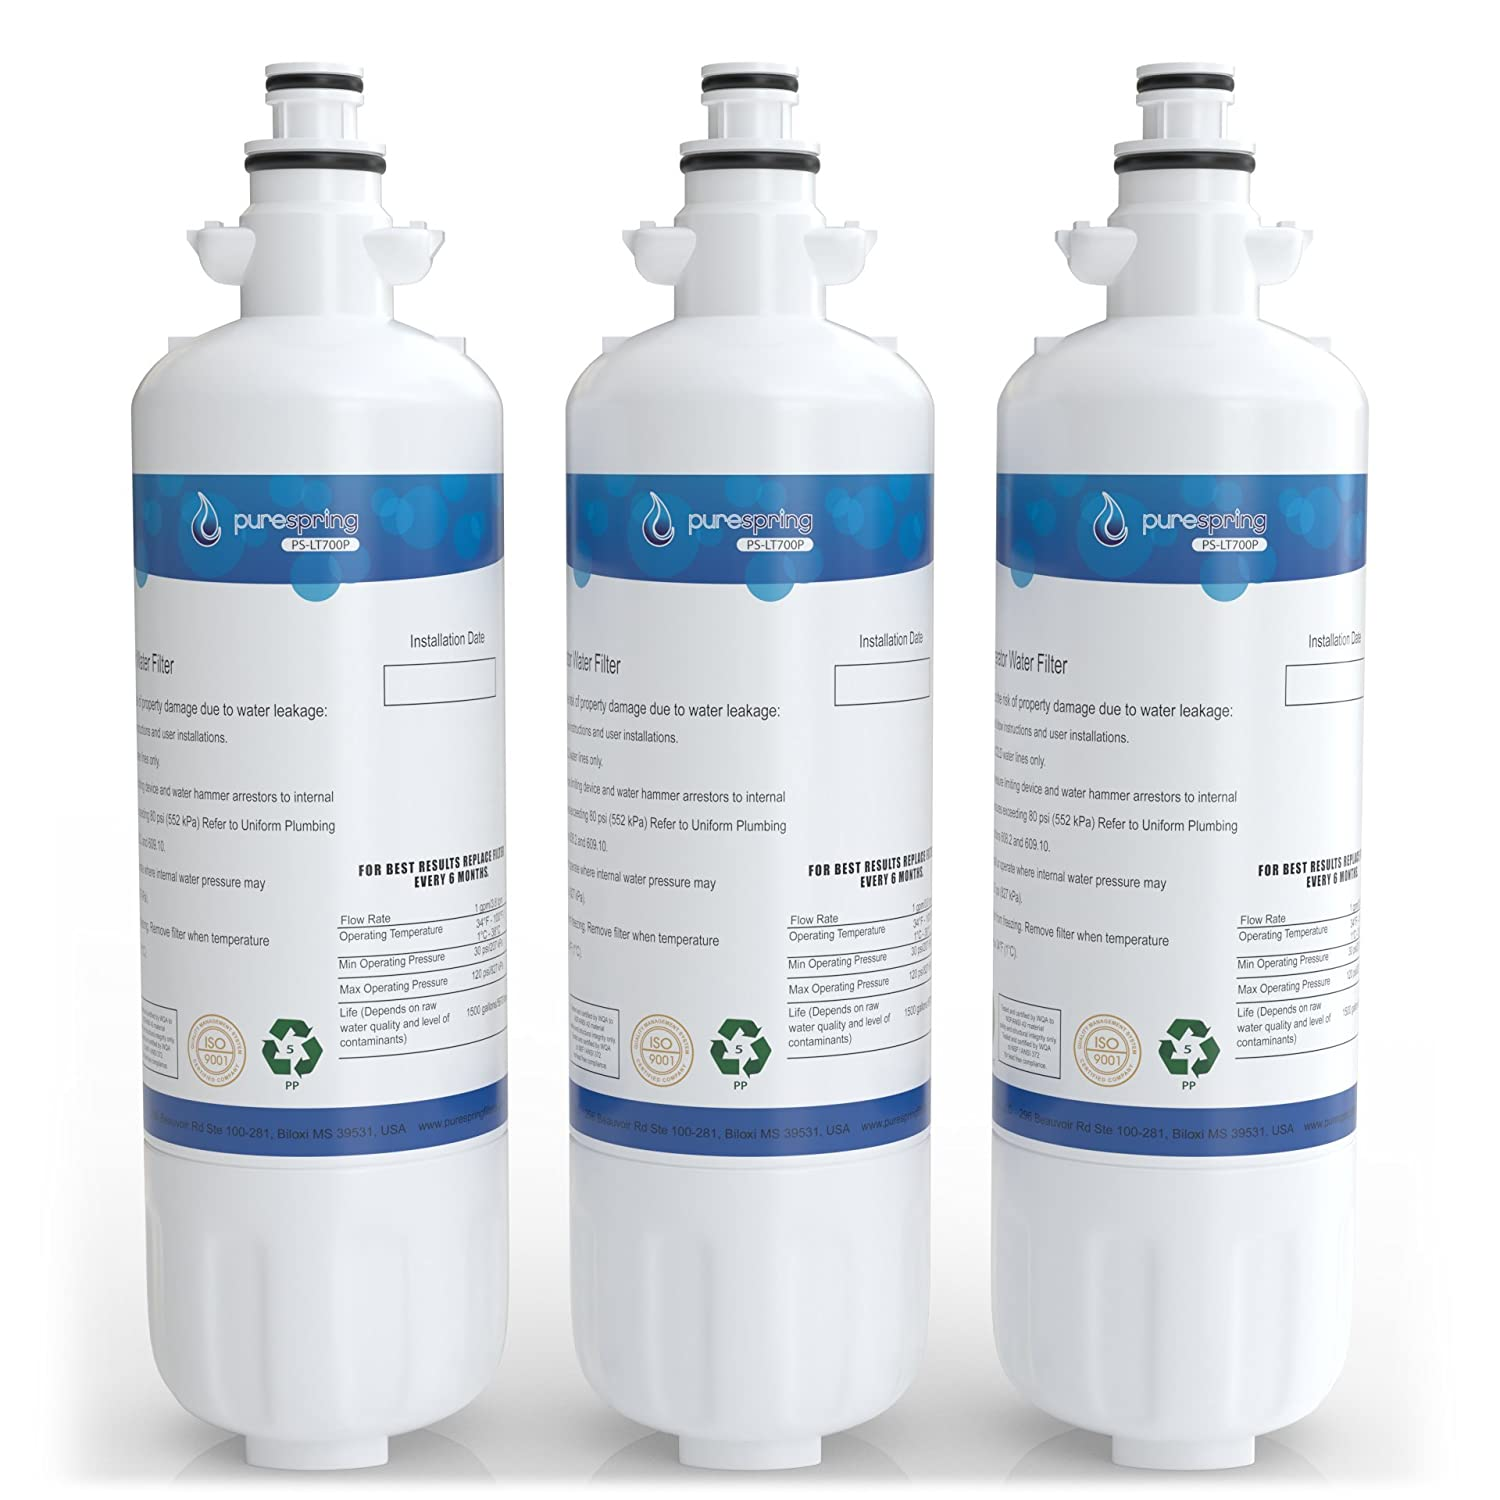 PureSpring LT700P Replacement Refrigerator Water Filter, Compatible with LG LT700P, ADQ36006101, ADQ36006102, Kenmore 46-9690, 469690 (3 Pack)